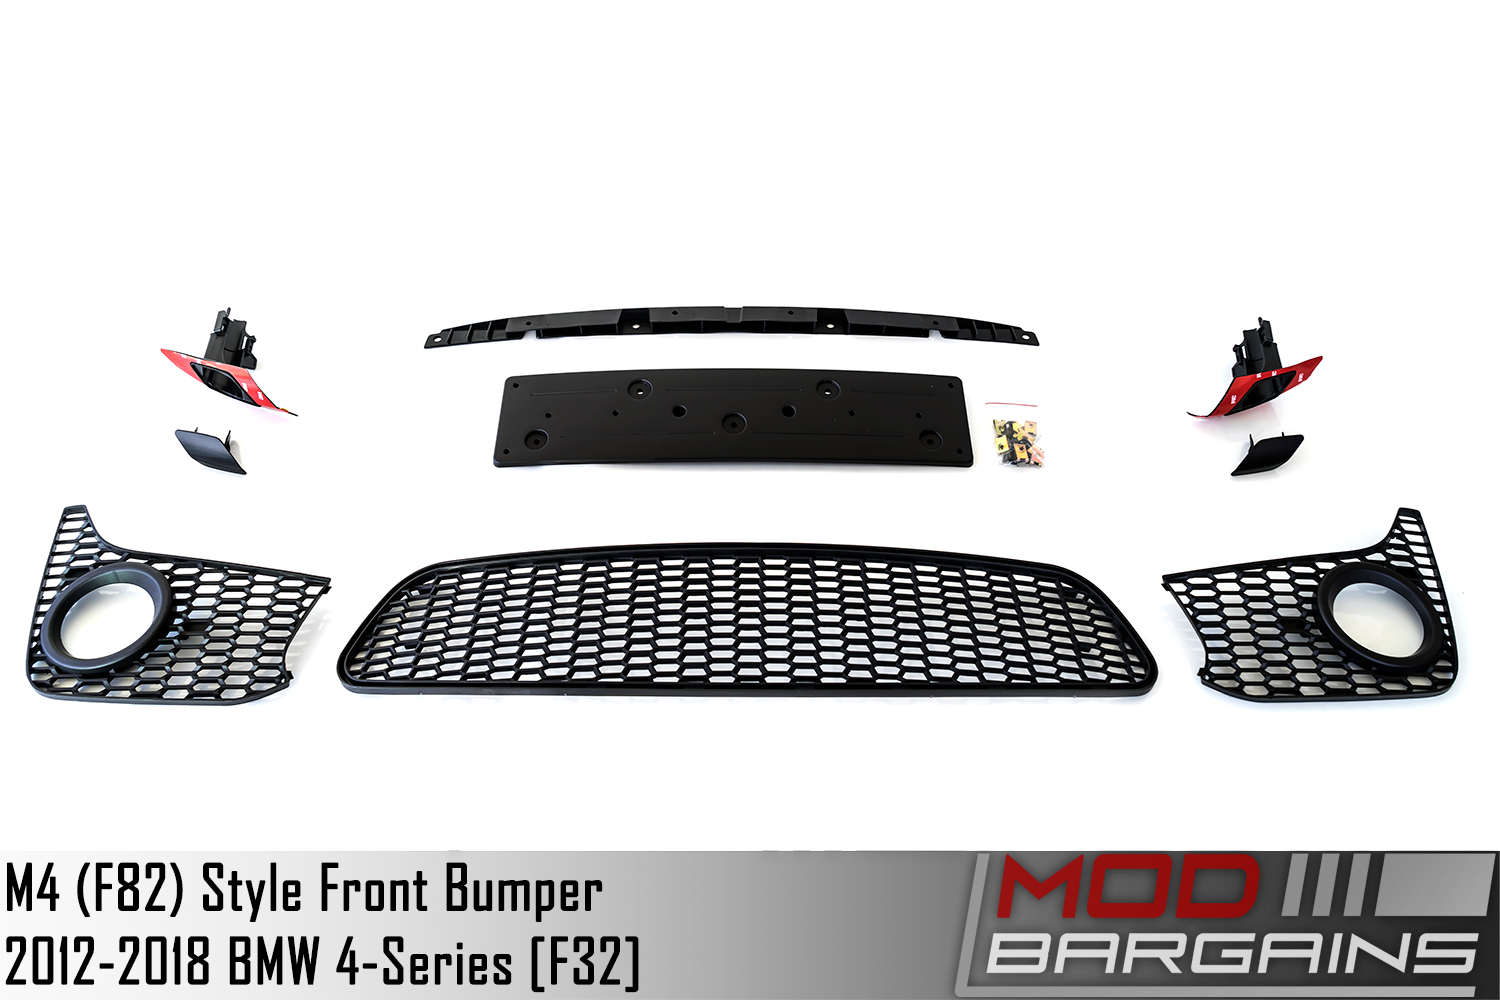 bmw 428i 430i 435i 440i M4 Sytle Front Bumper Included parts